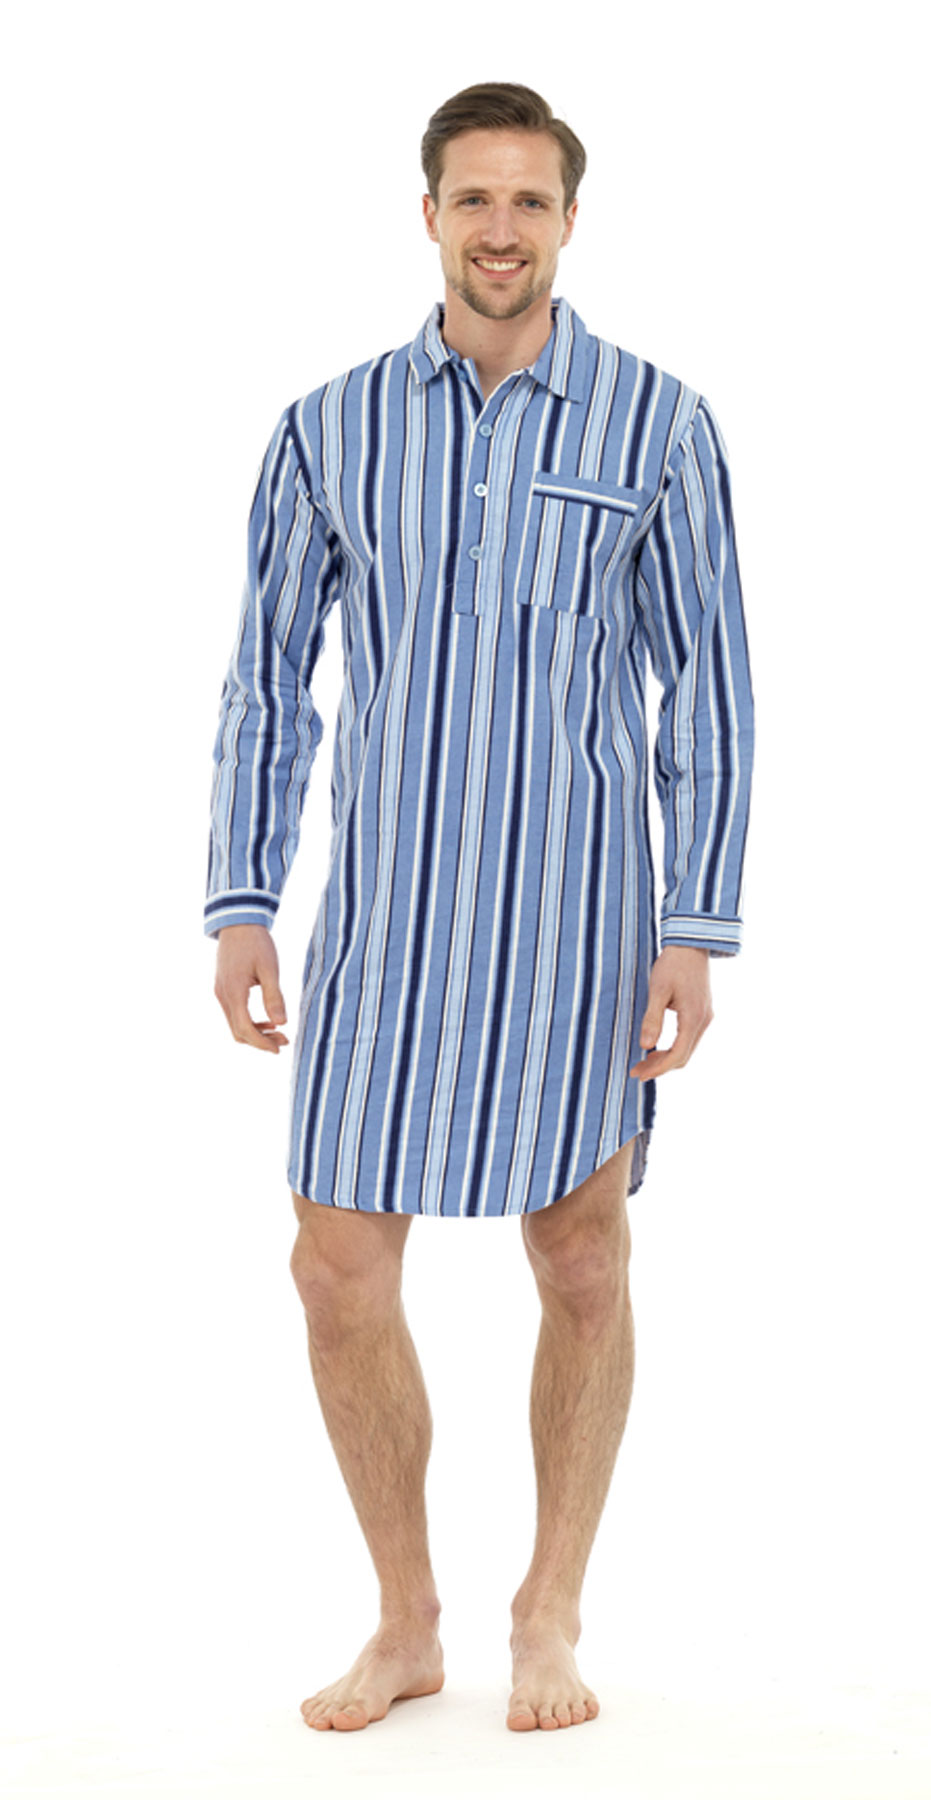 New Mens Champion Haigman Cotton Nightshirt Sleepwear ...